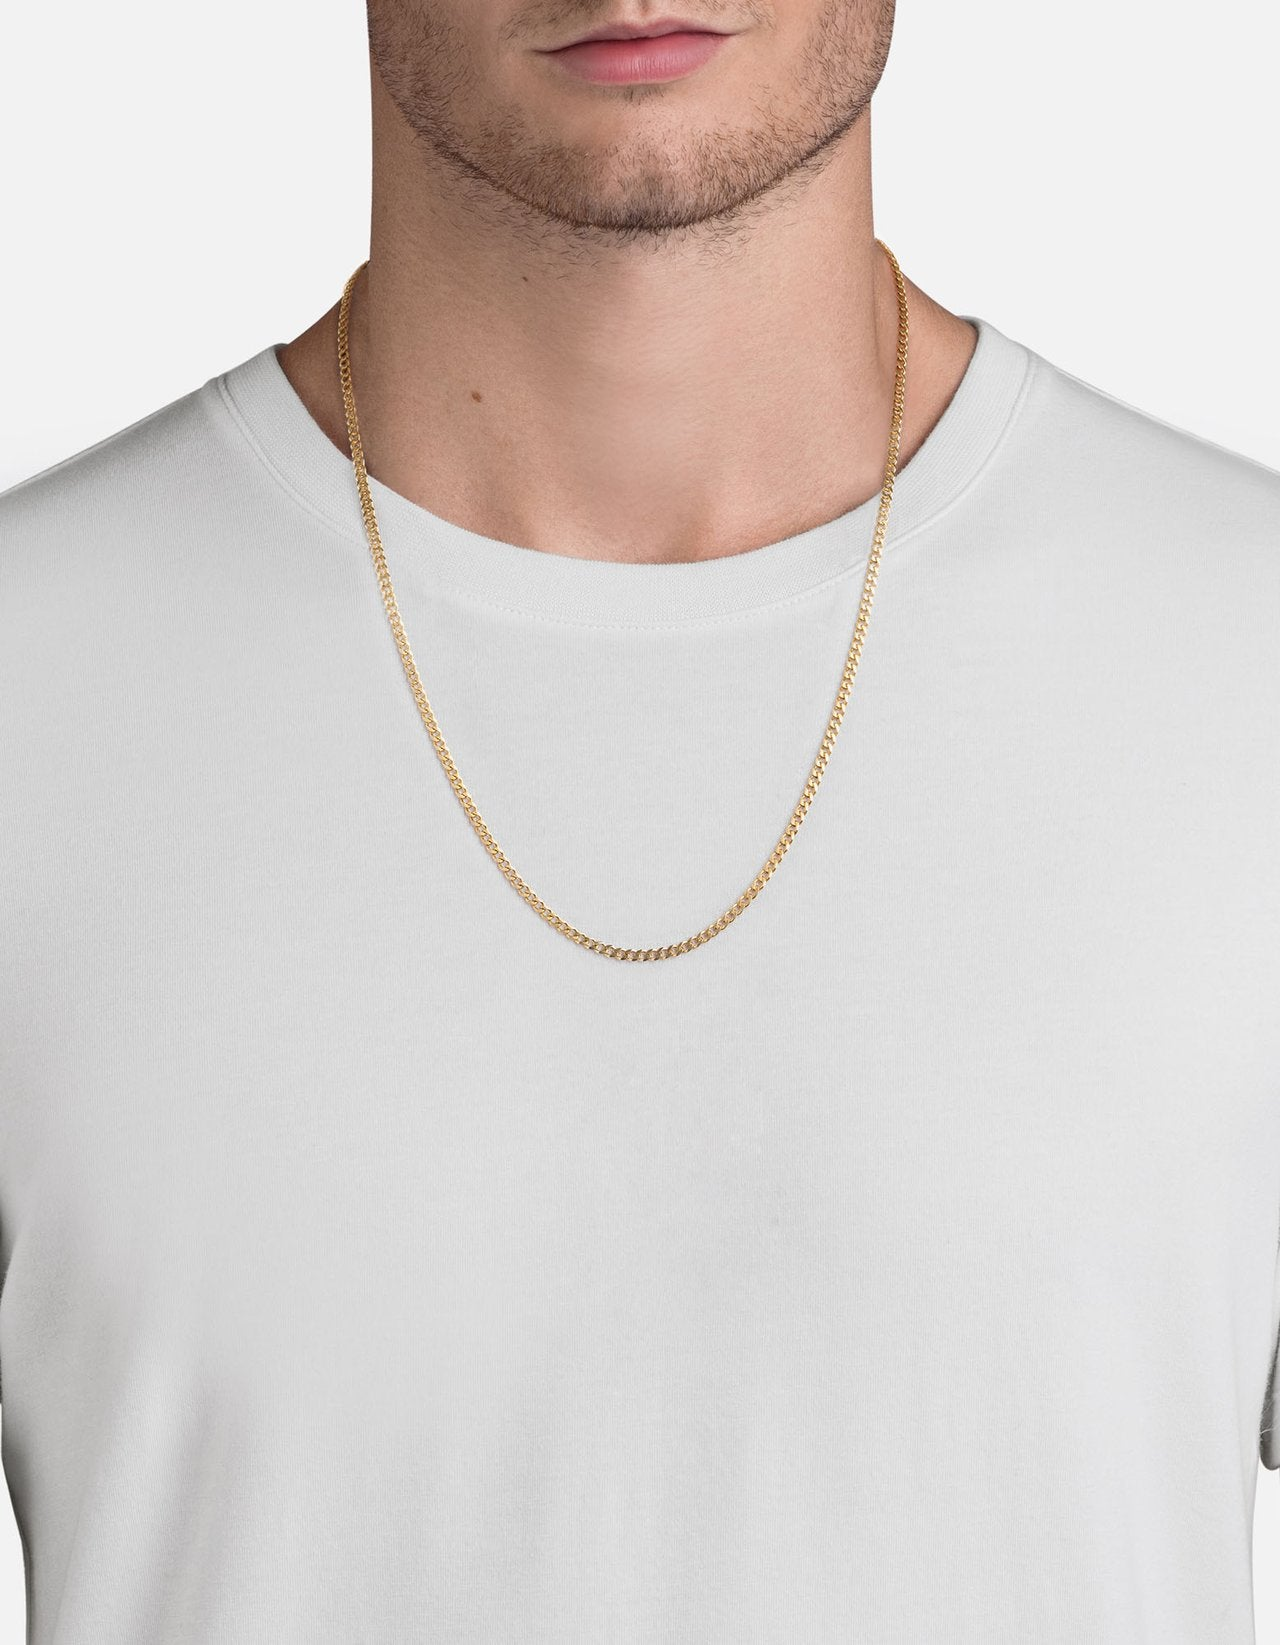 Miansai 3mm 14k Yellow Gold Chain Necklace, Matte